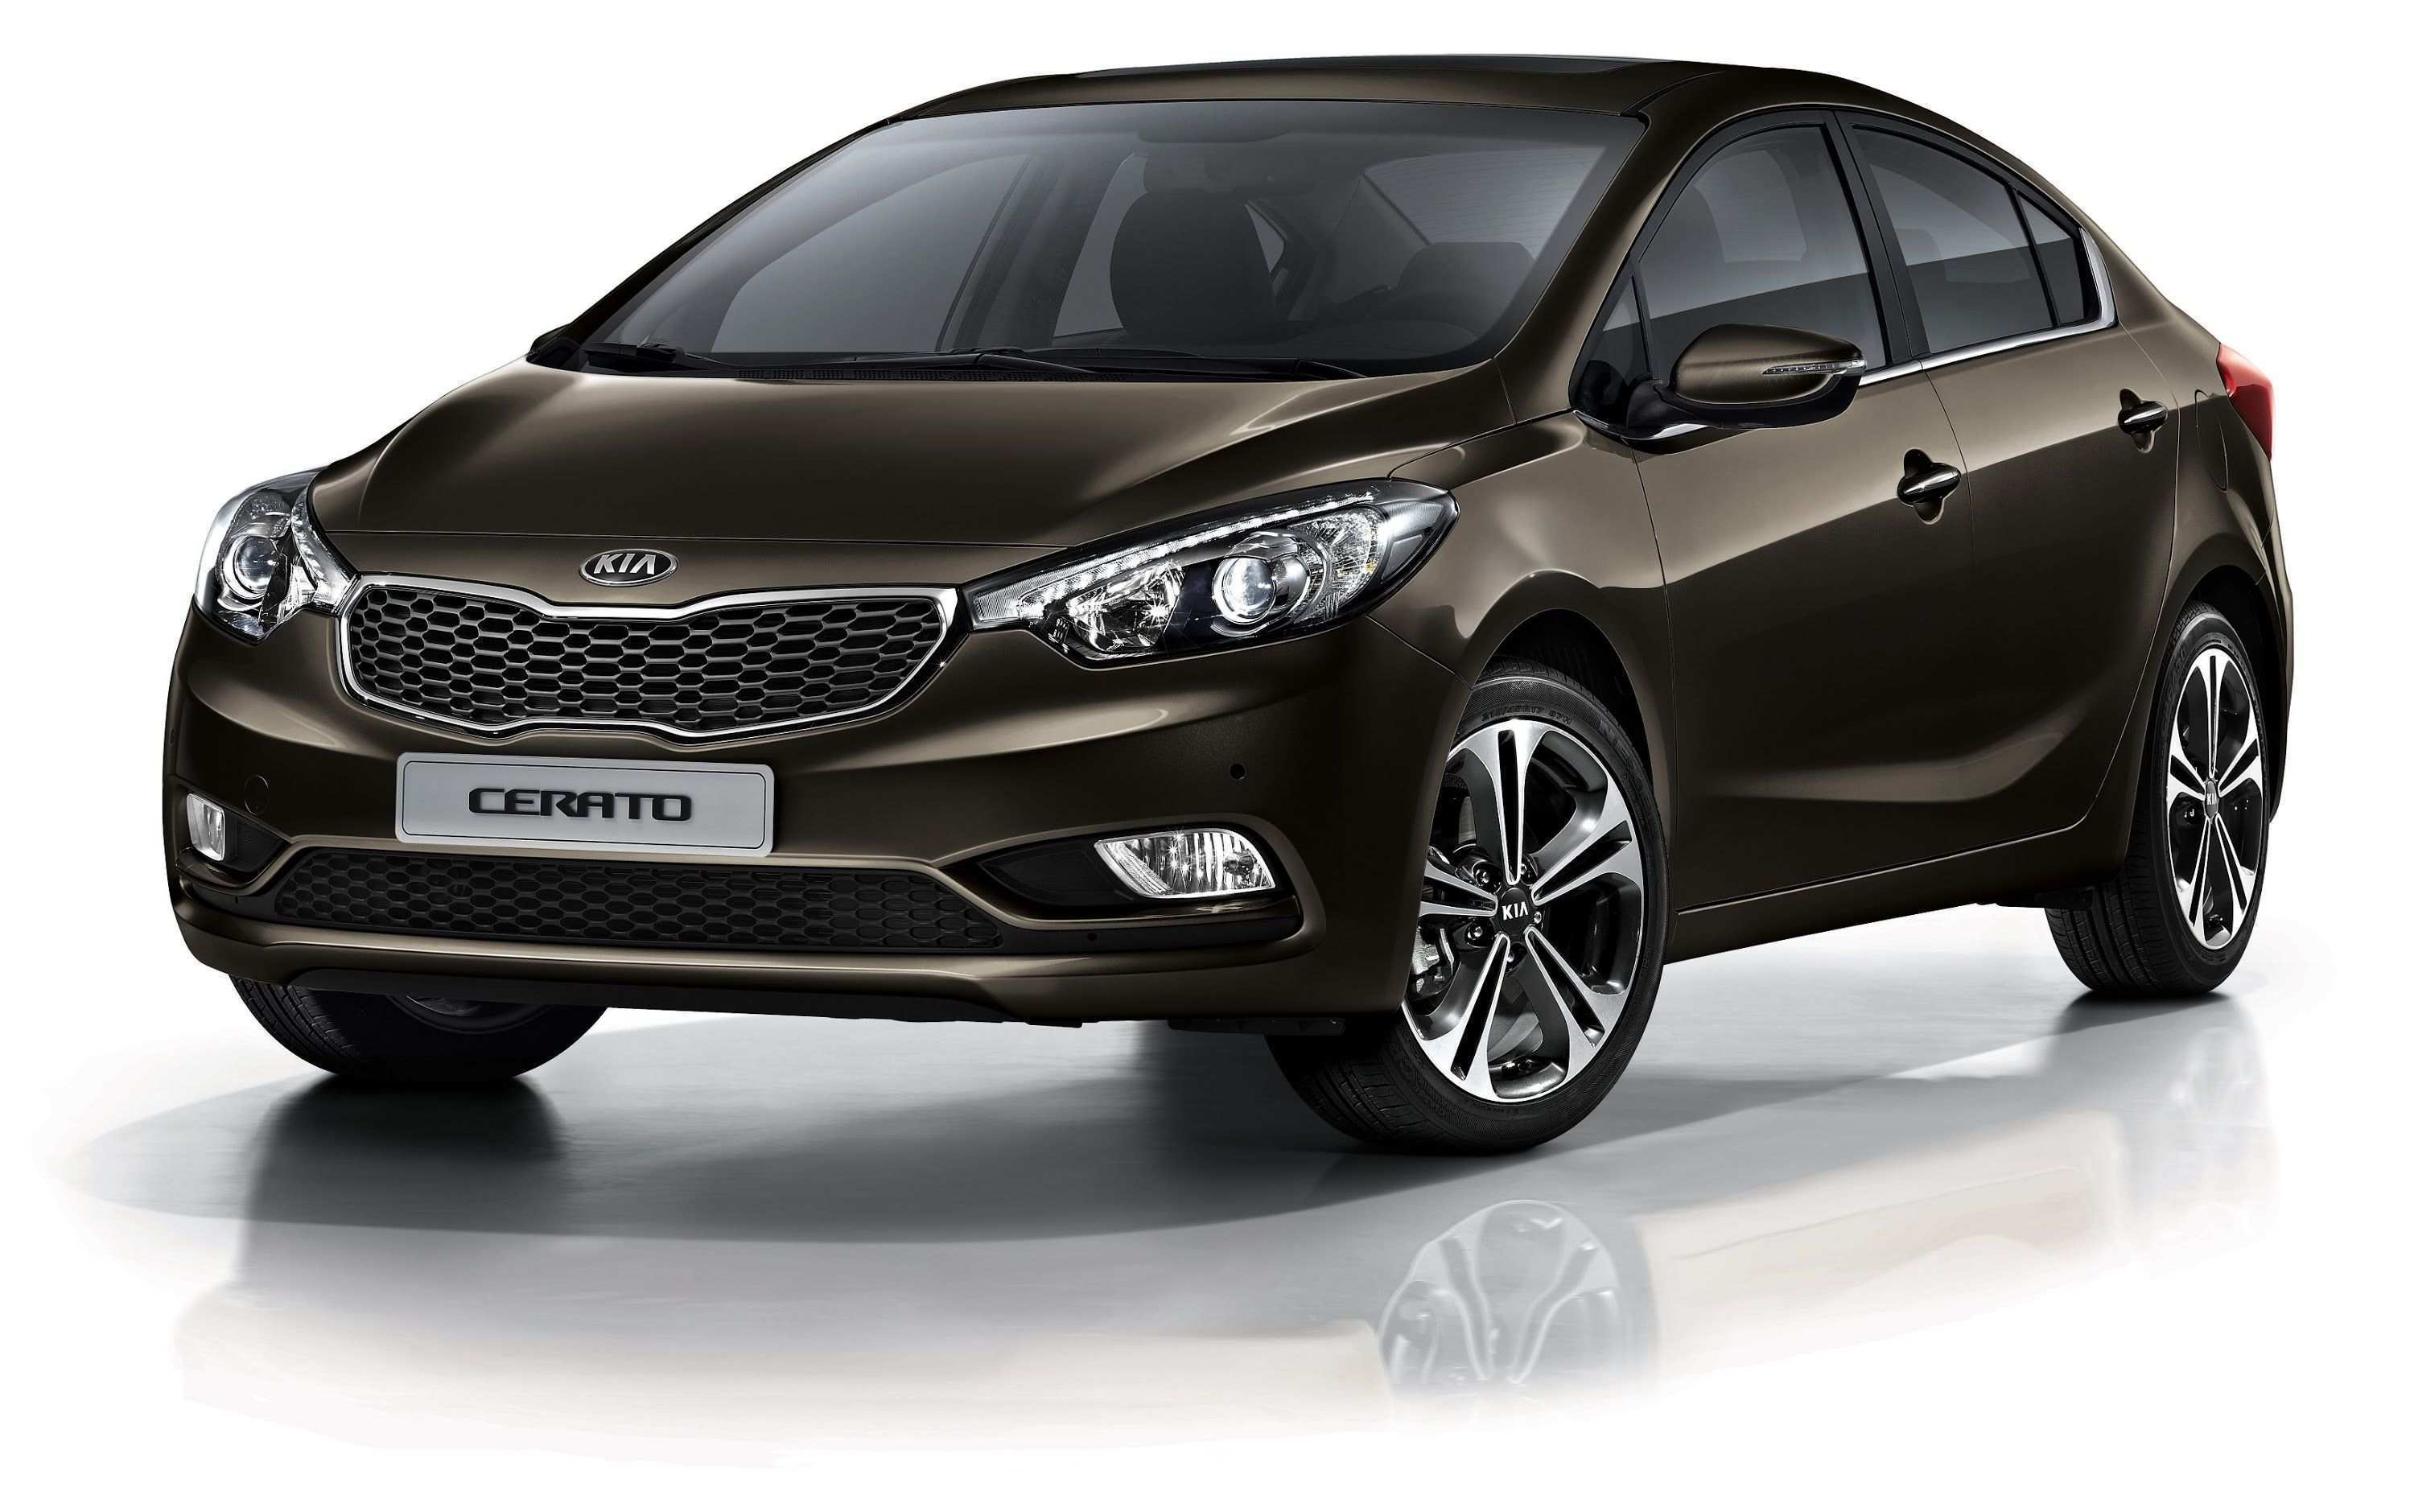 46 A Kia Cerato 2019 Price In Egypt Pricing